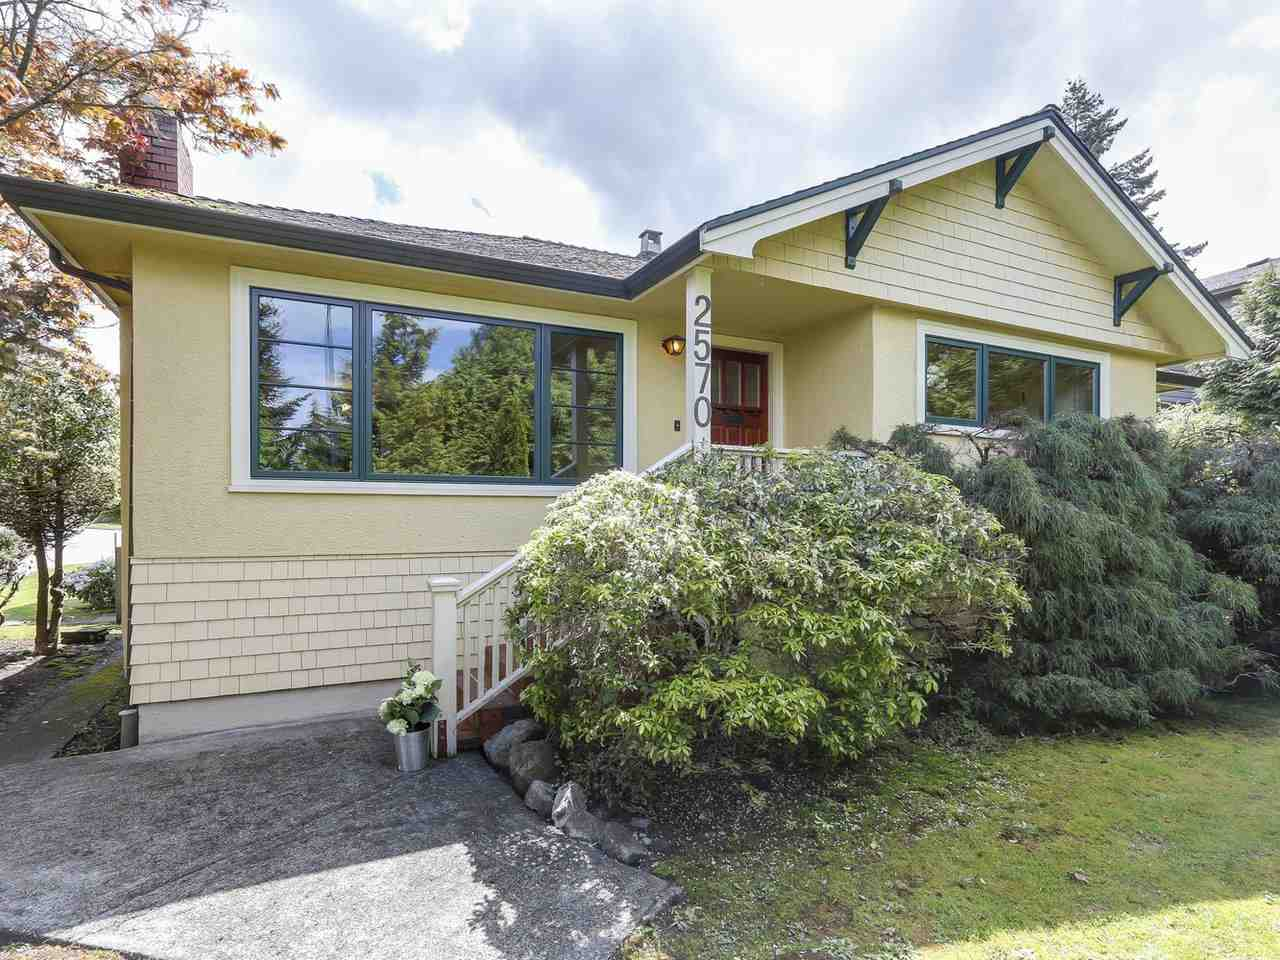 Main Photo: 2570 W KING EDWARD Avenue in Vancouver: Quilchena House for sale (Vancouver West)  : MLS(r) # R2169012